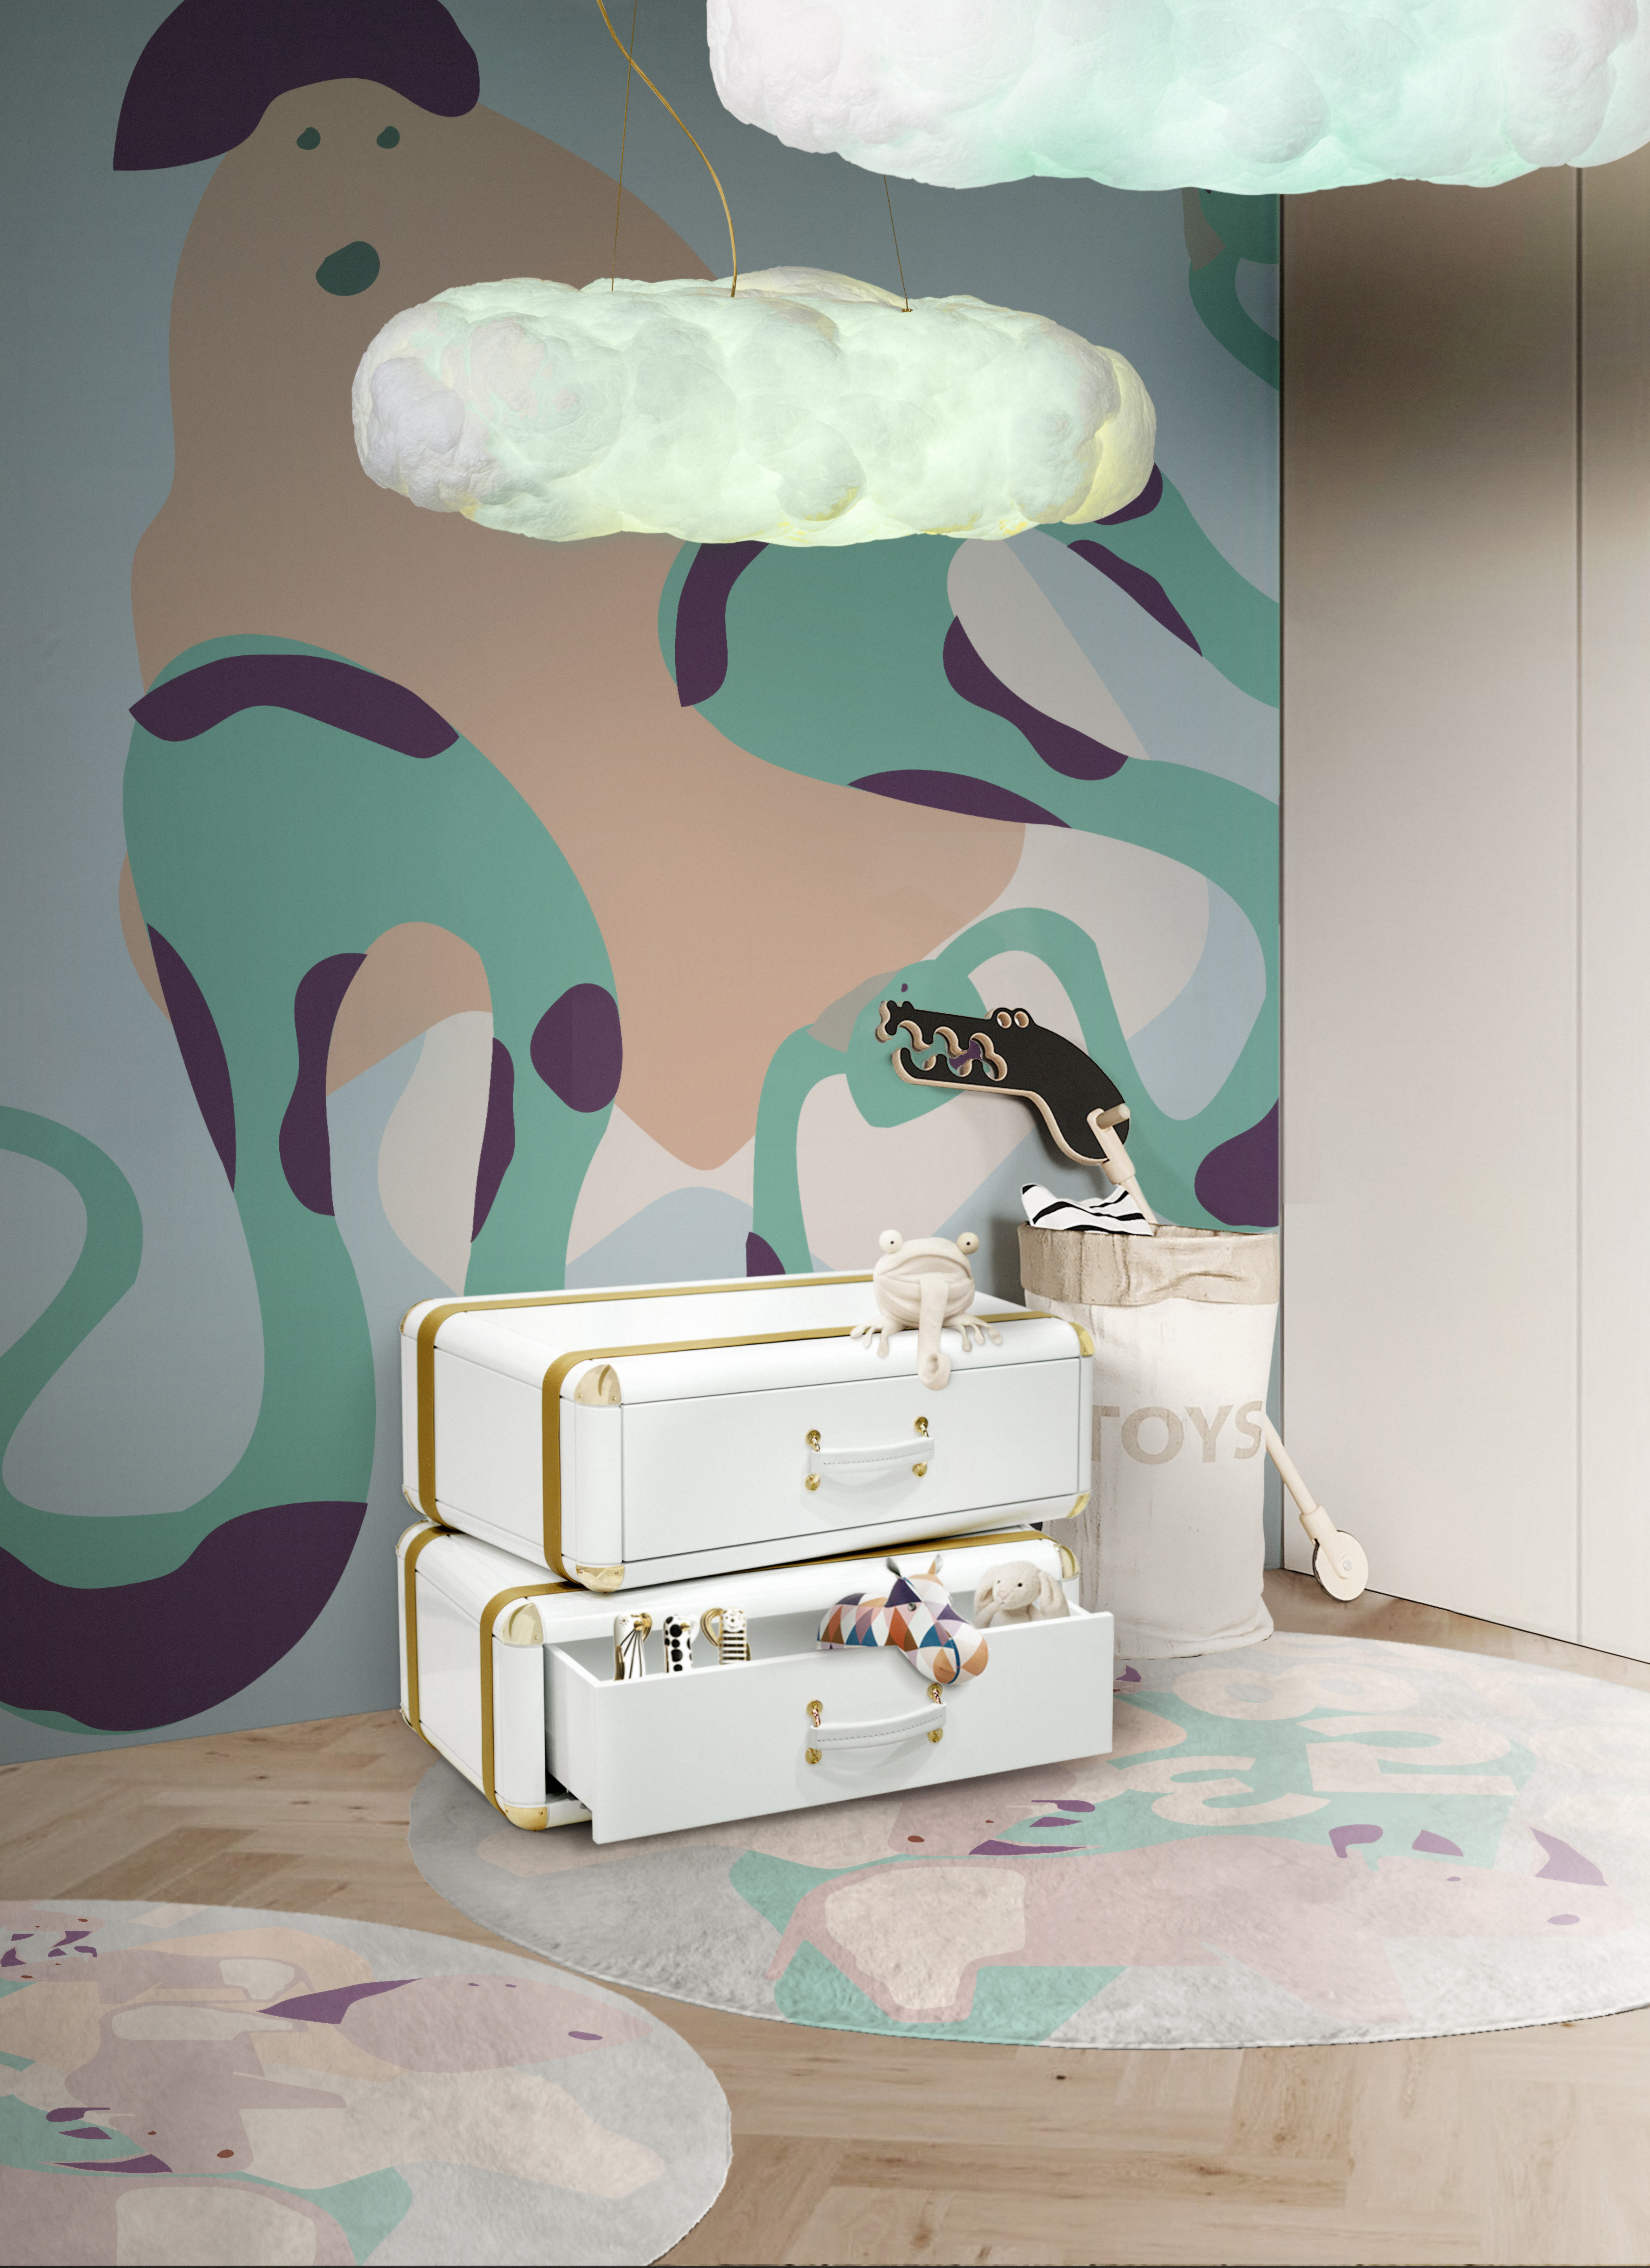 Luxury kids room essentials: a vintage-inspired nightstand with an extraordinary design